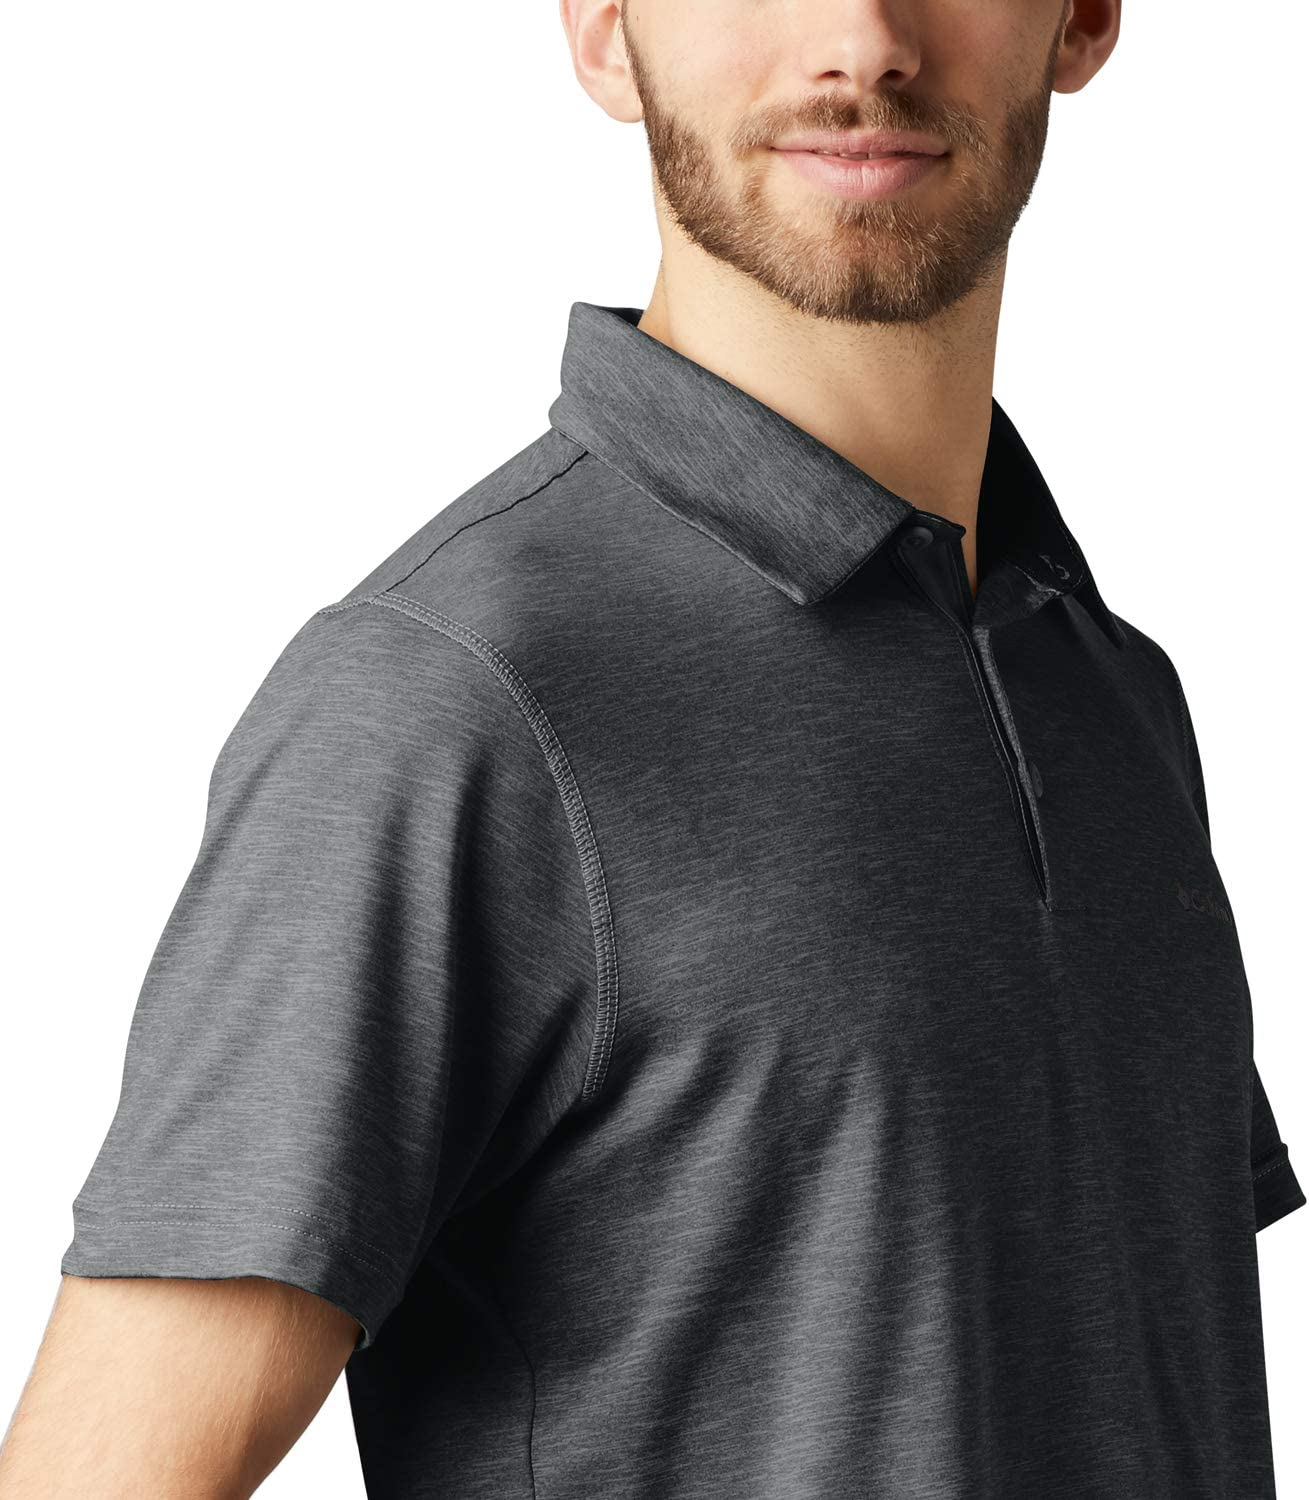 Columbia Mens Hoodie Silhouette with Features as Omni-Shade UPF 30 Sun Protection